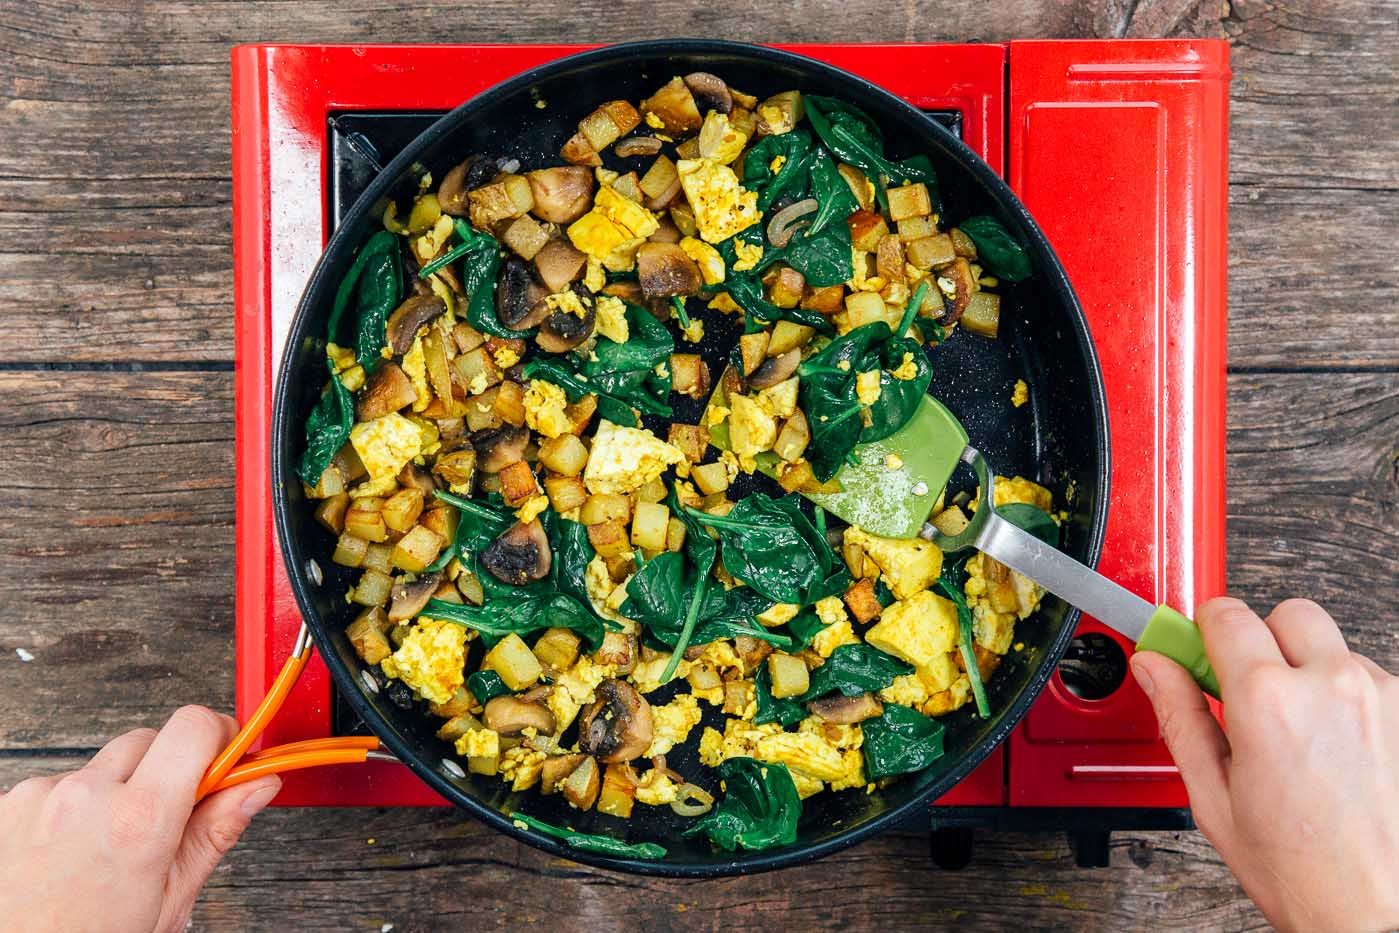 Cooking scrambled tofu with spinach in a large skillet on a camping stove